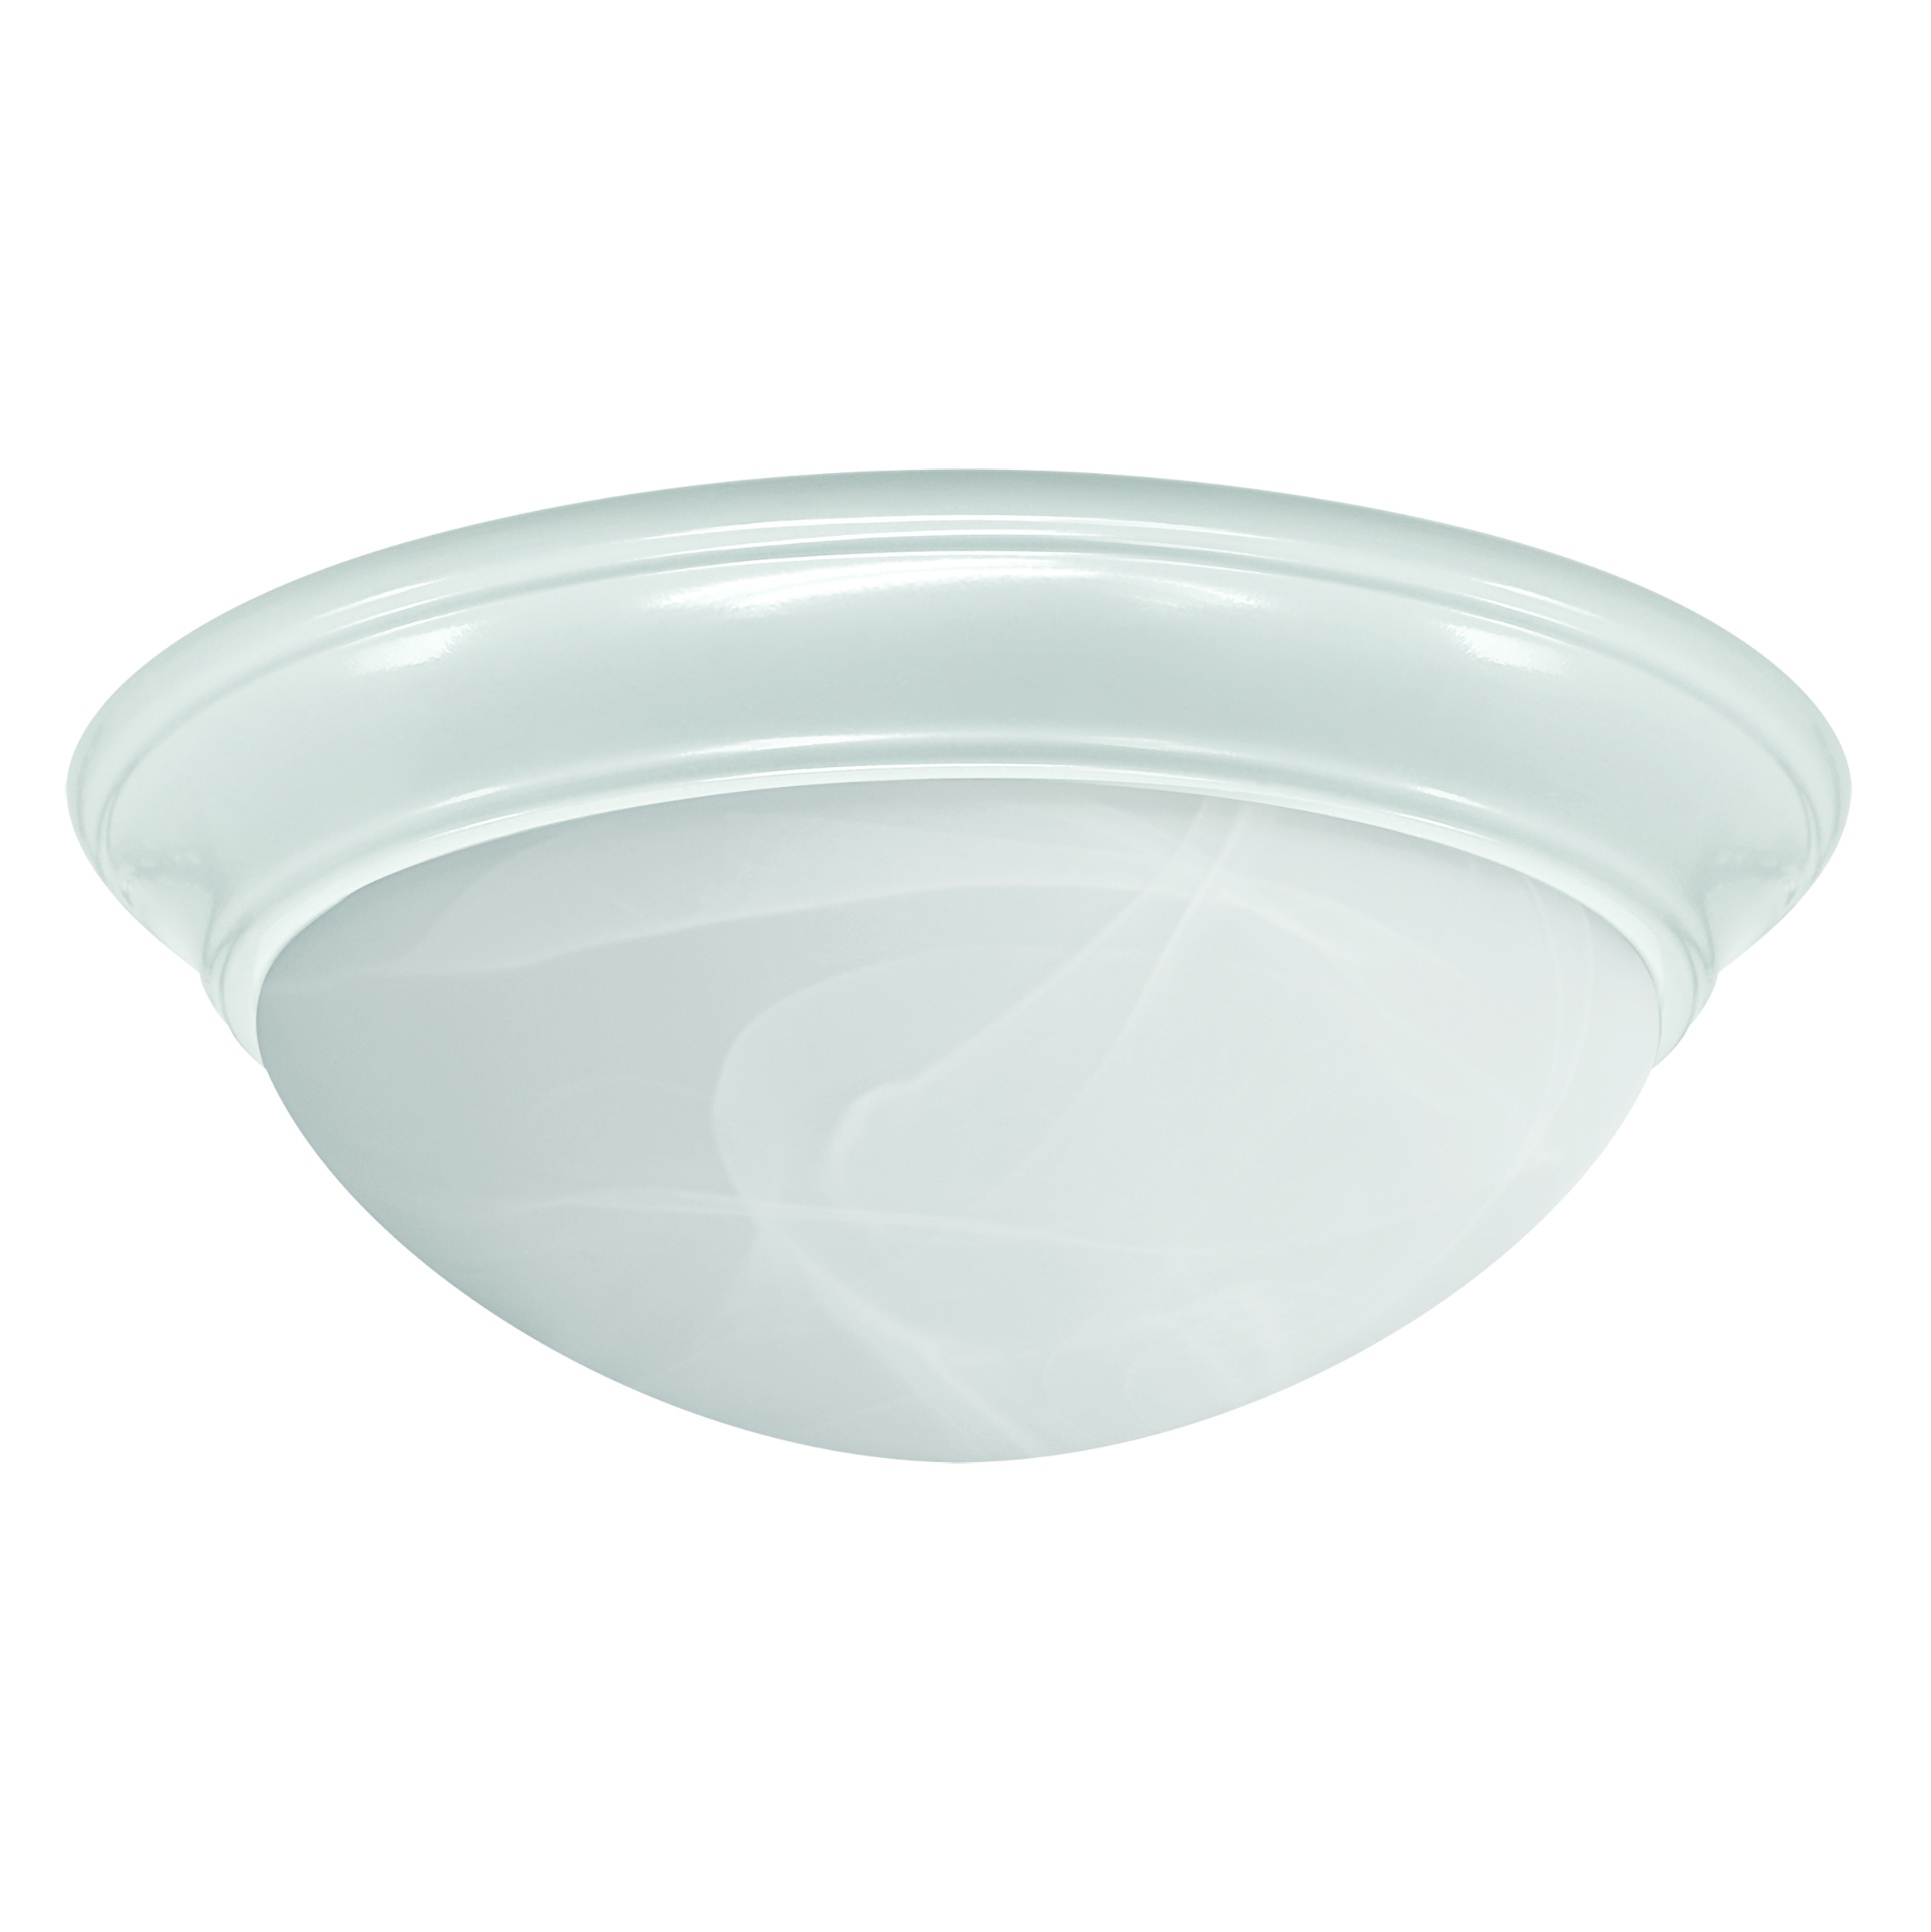 1100 Lumen Color Selectable 13 Inch LED White Ceiling Fixture